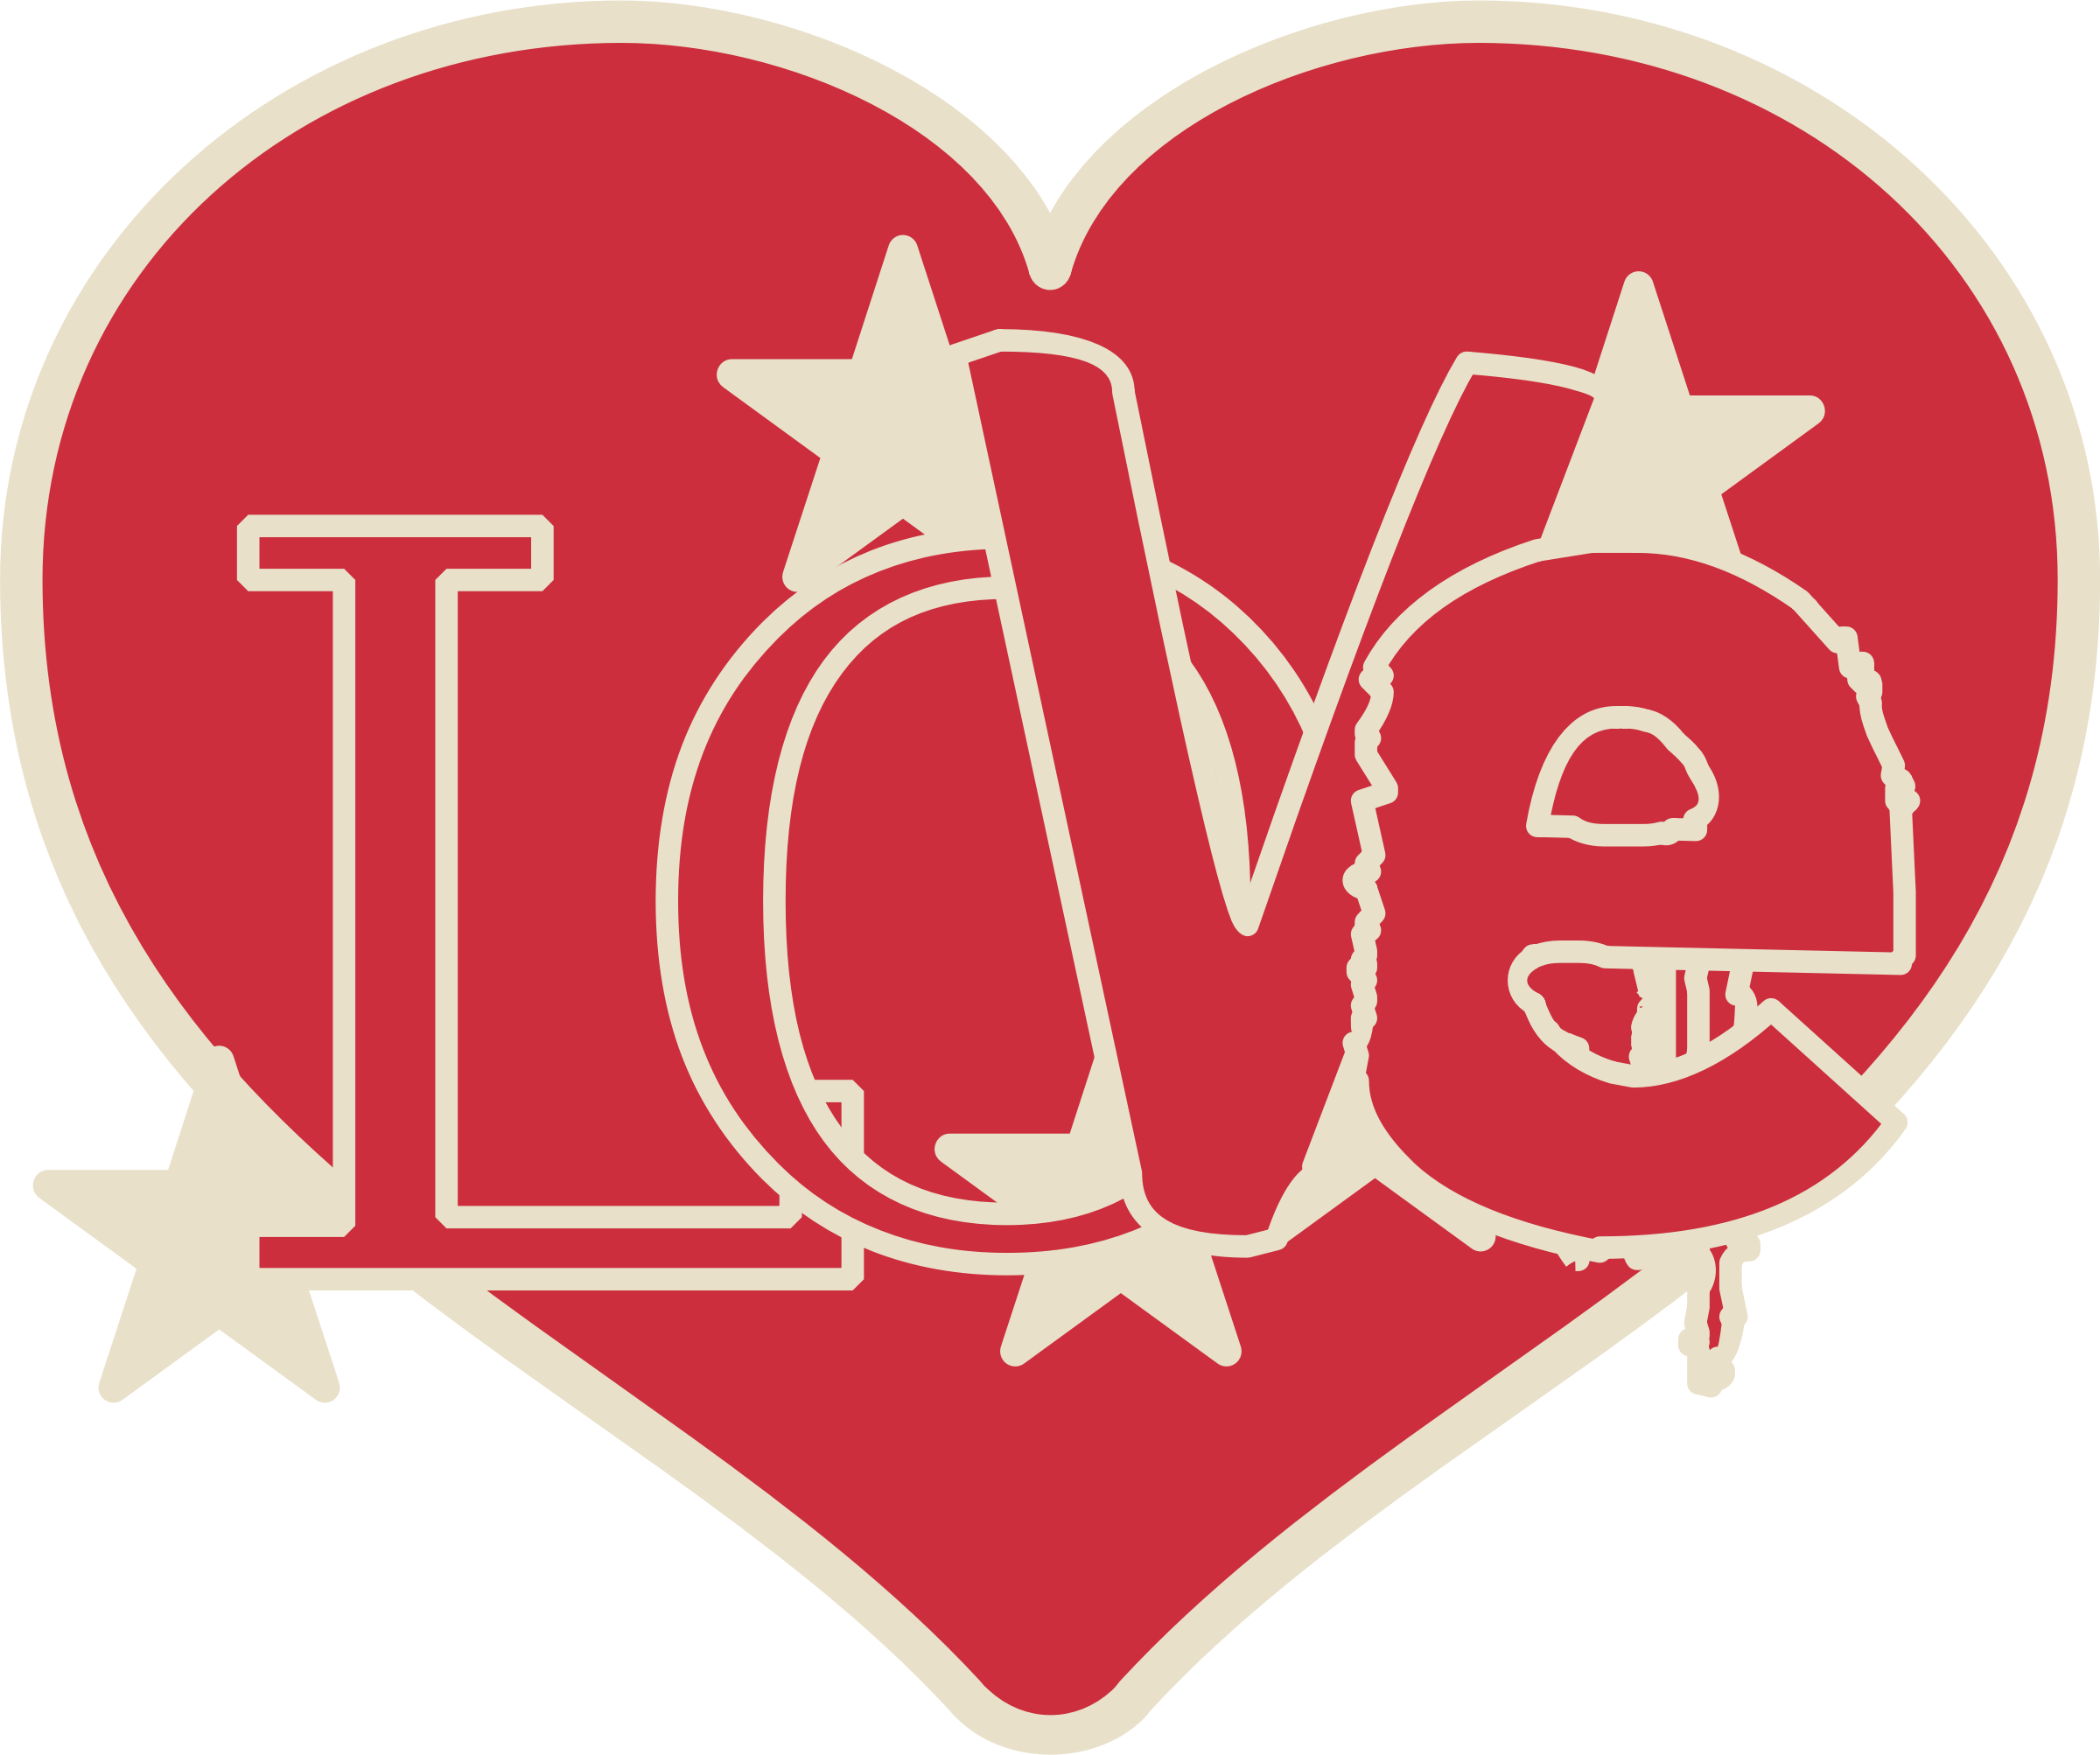 February clipart loved. Love heart big image